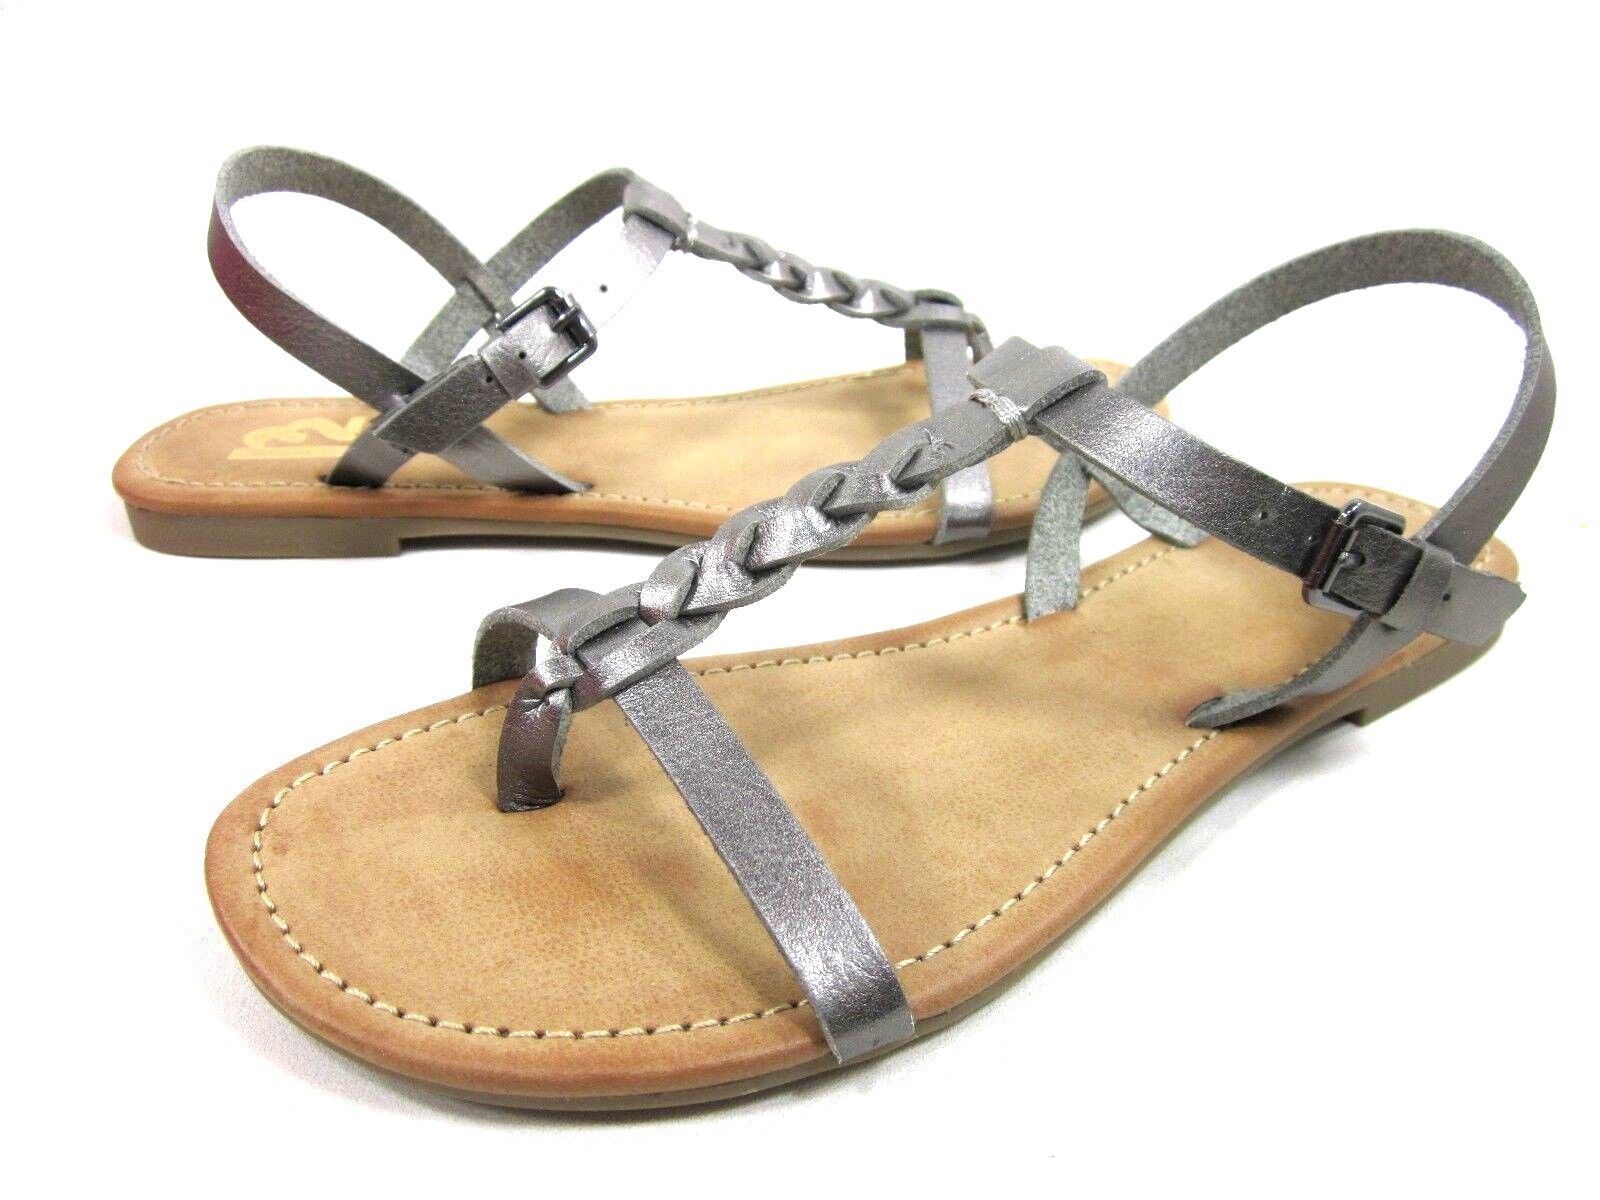 R2 FOOTWEAR FASHION WOMEN'S CAYMAN T-STRAP THONG FASHION FOOTWEAR SANDALS,PEWTER,MEDIUM,NEW e2f63c